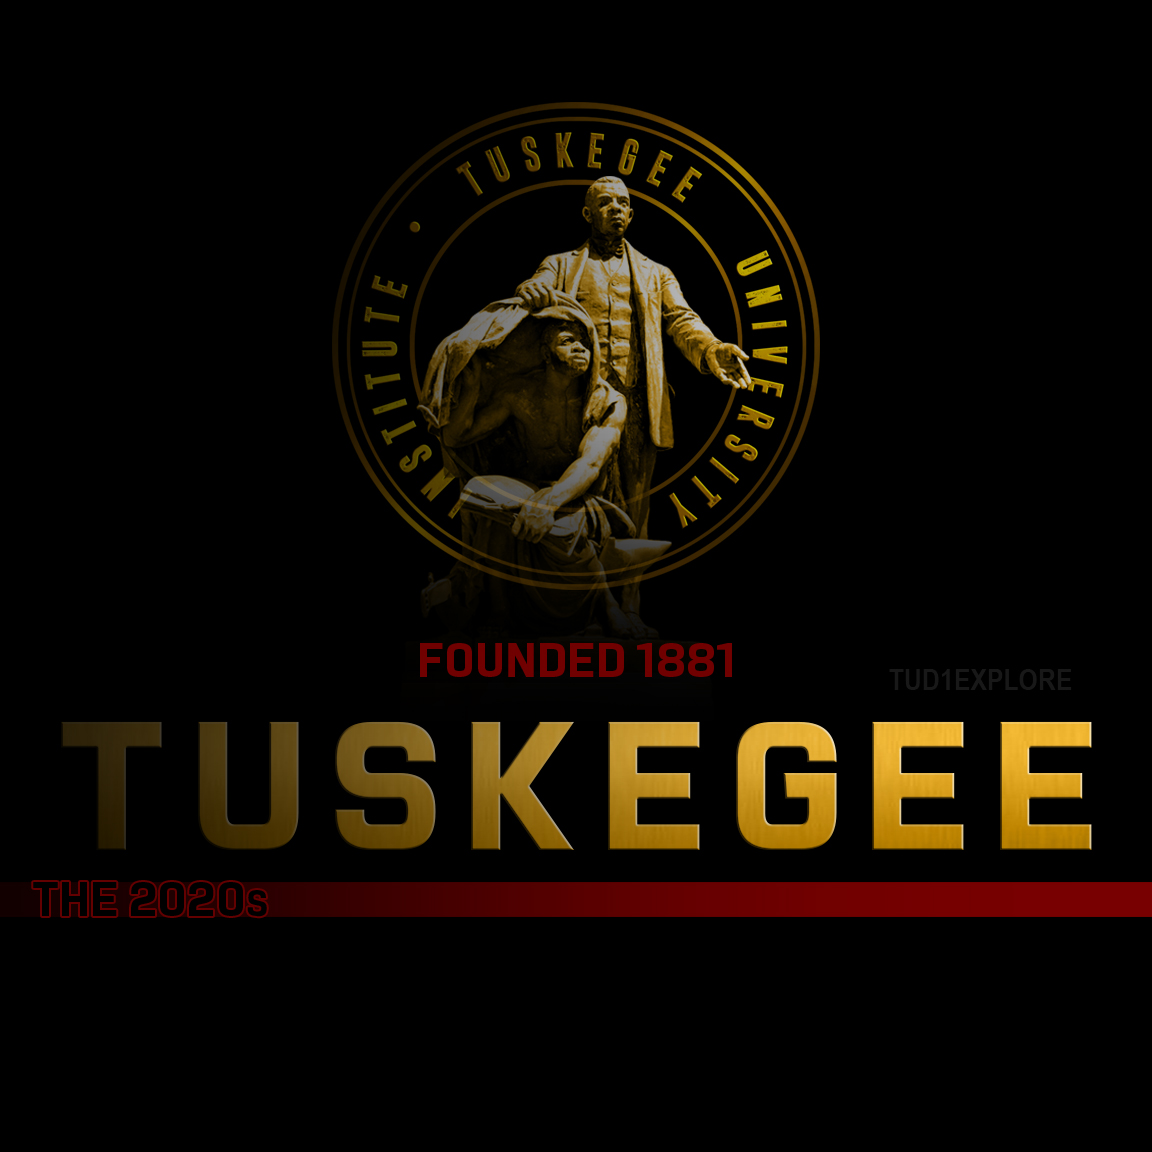 Come see what's next at #TUSKEGEE in the 2020s #HBCU #Skegee #Alabama #Education #Athletics #Science #Technology #Americapic.twitter.com/ongfgcUy2X